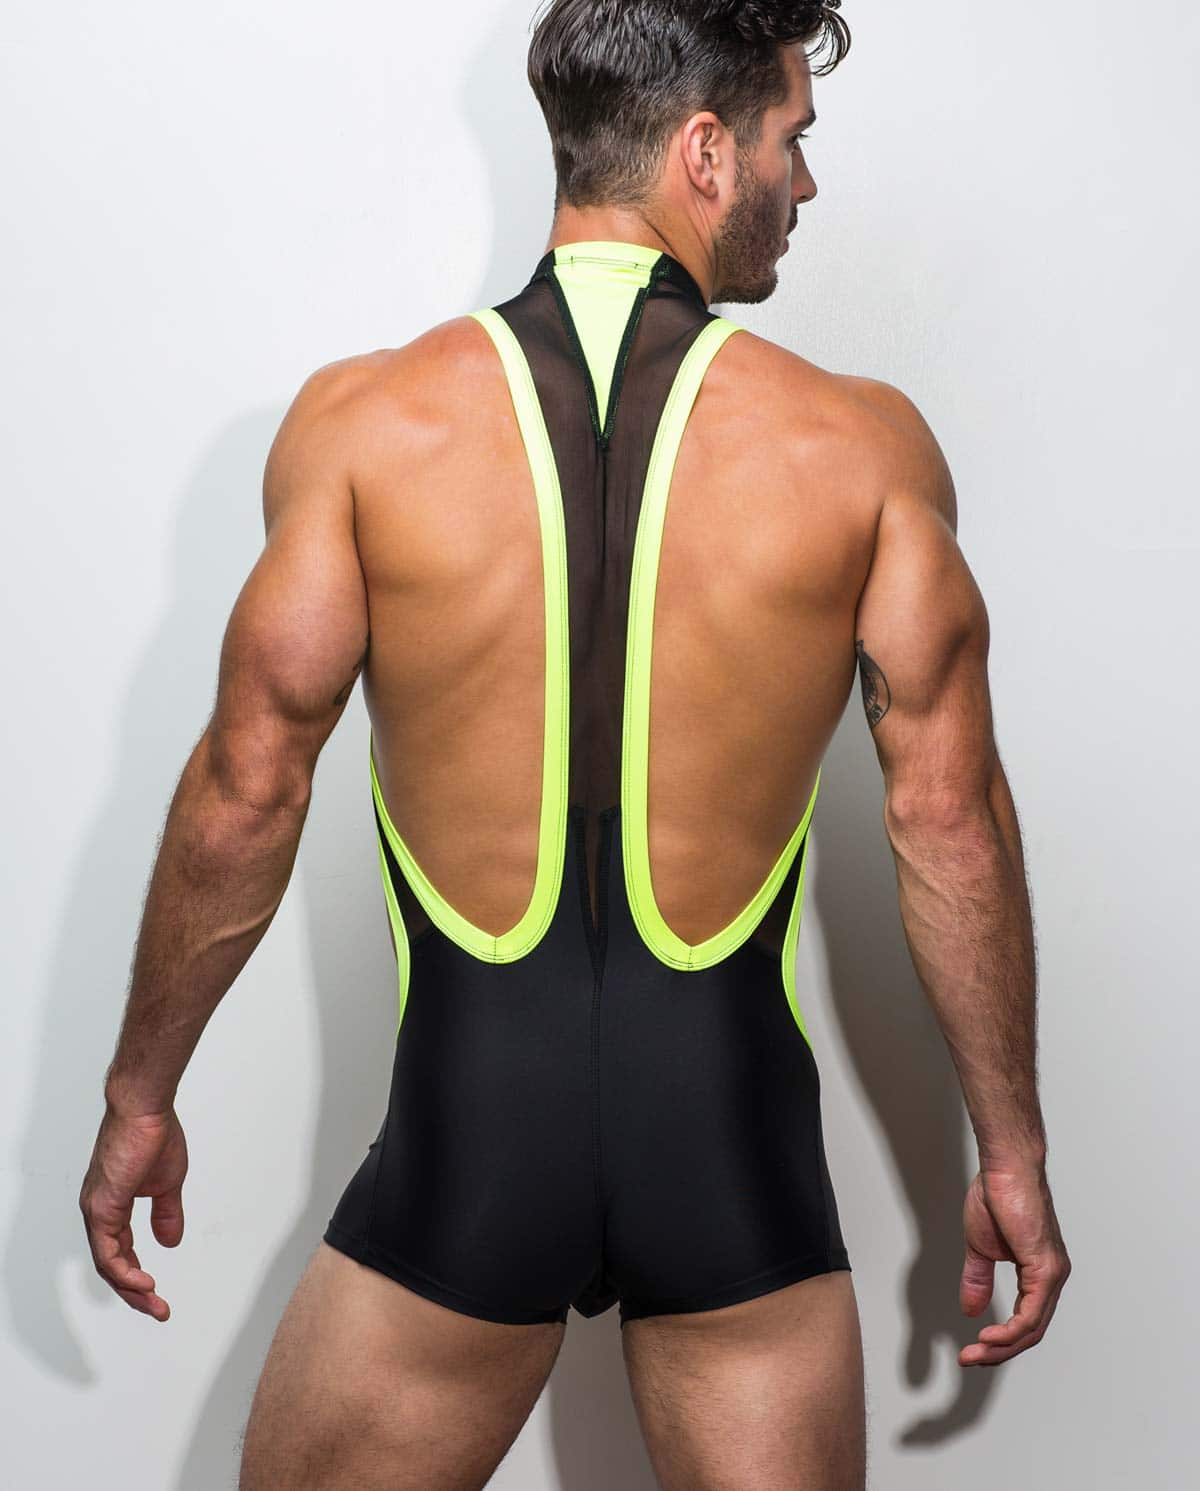 Male underwear model wearing Marco Marco Men's Trunk Singlet - Front